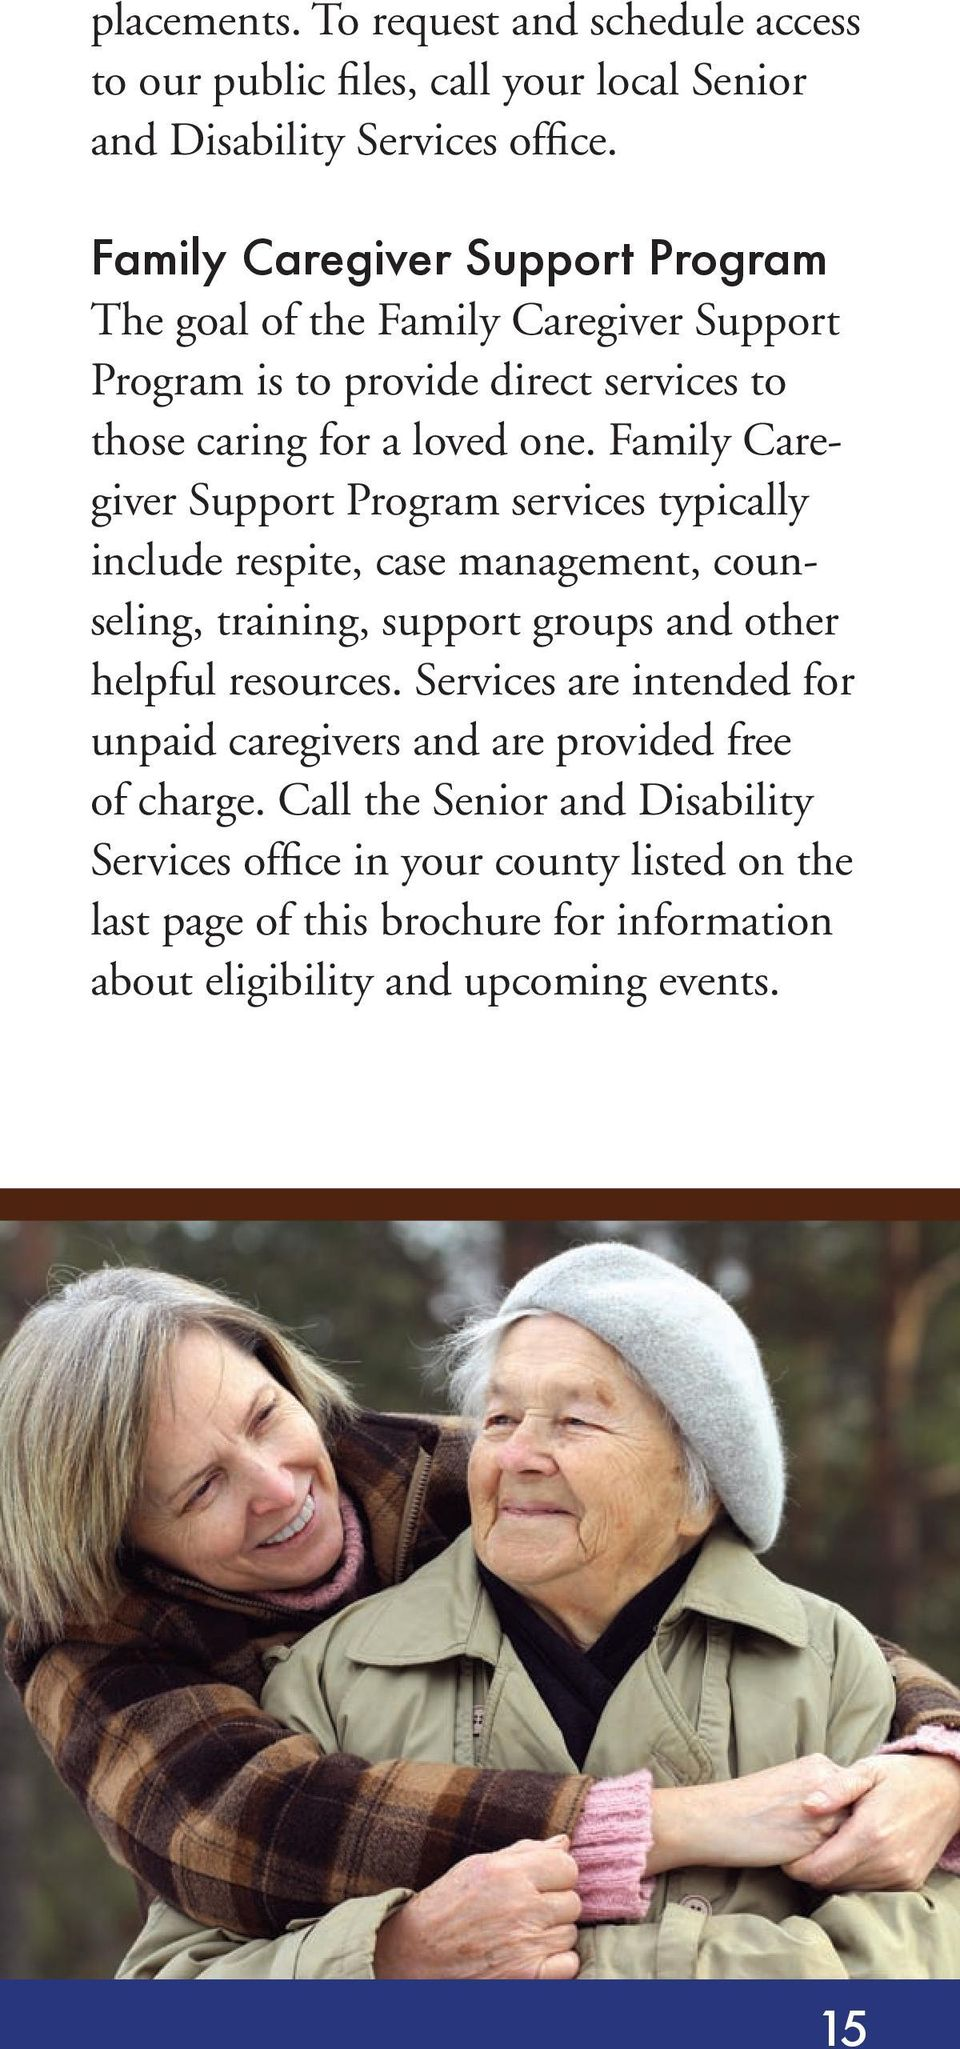 Family Caregiver Support Program services typically include respite, case management, counseling, training, support groups and other helpful resources.